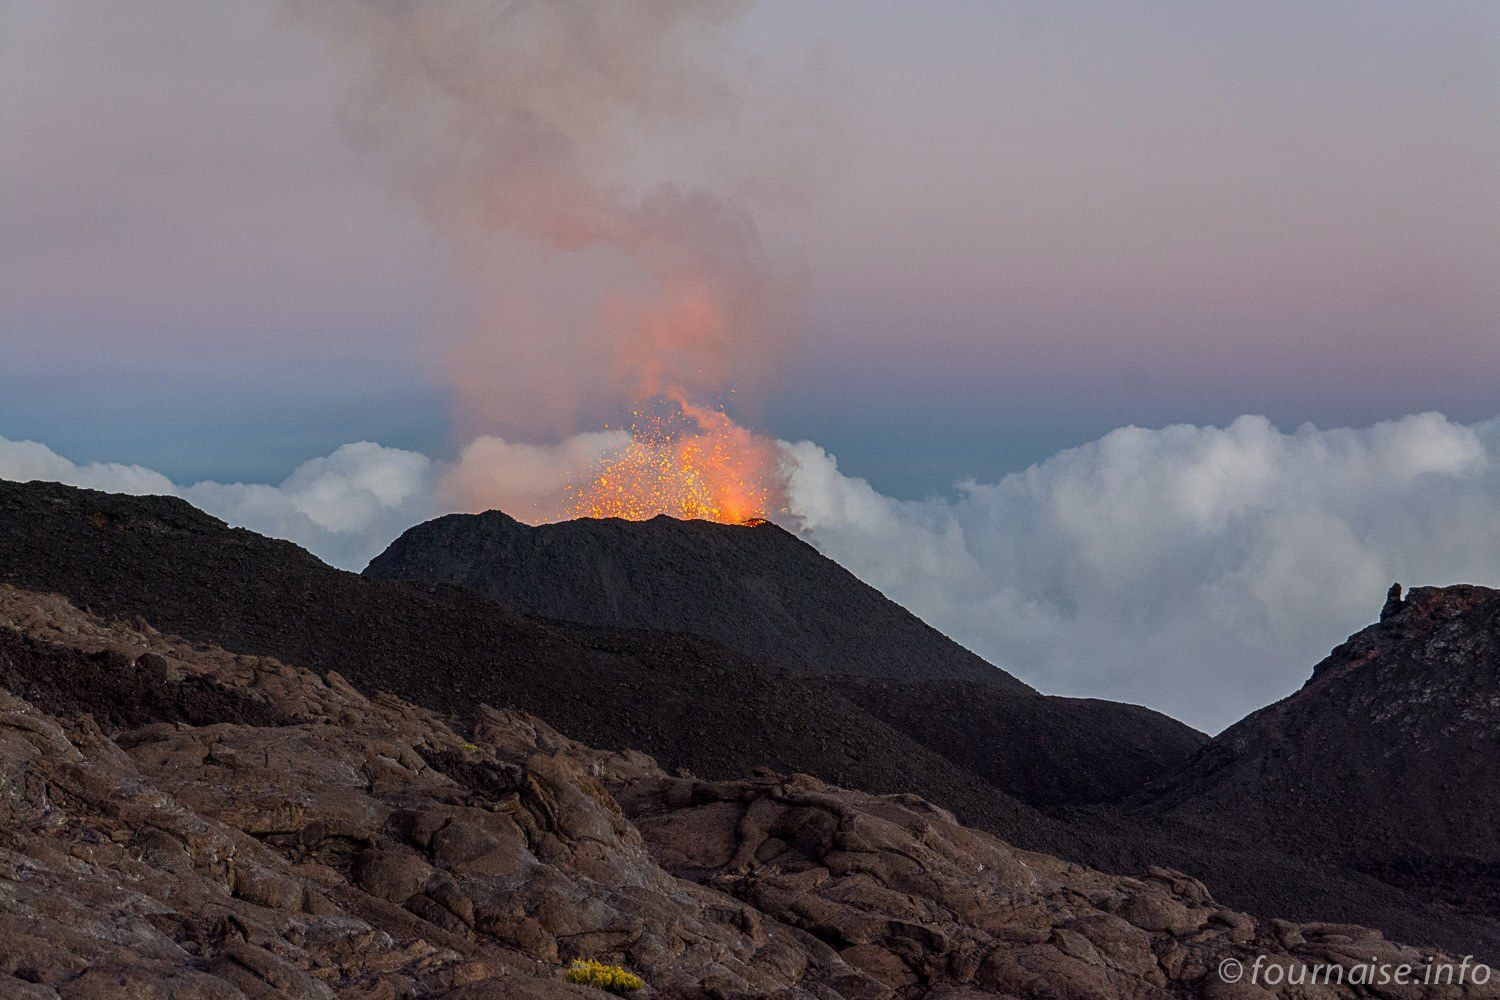 Piton de la Fournaise, the active cone on 09/19/2015 - photo Fournaise-info